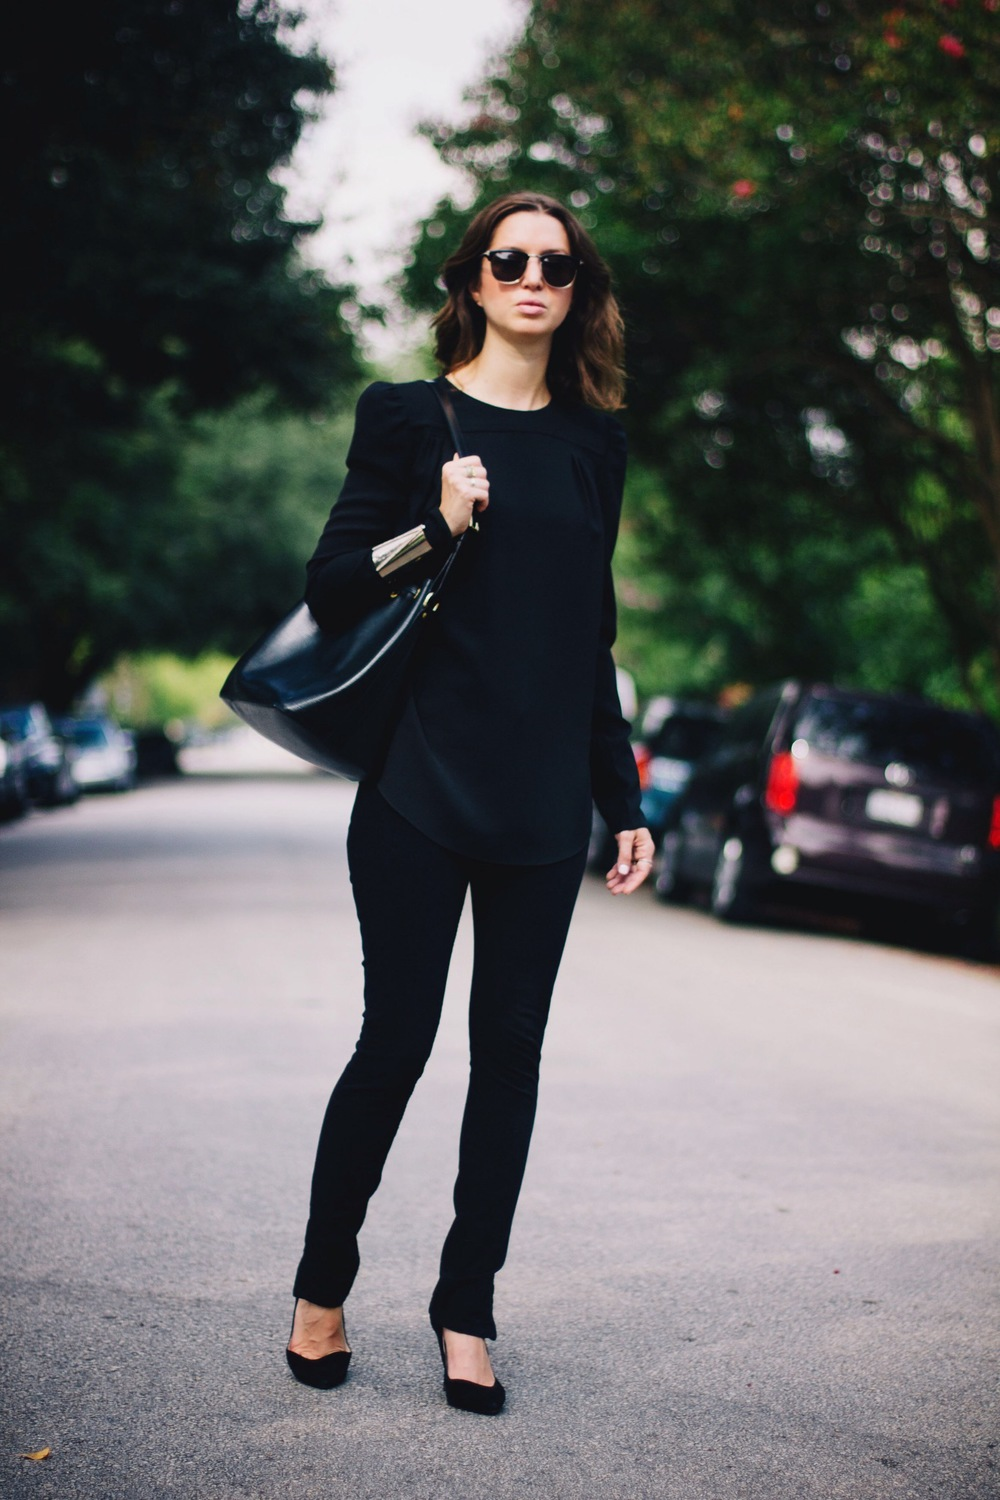 Carven puffy shoulder blouse with all black outfit